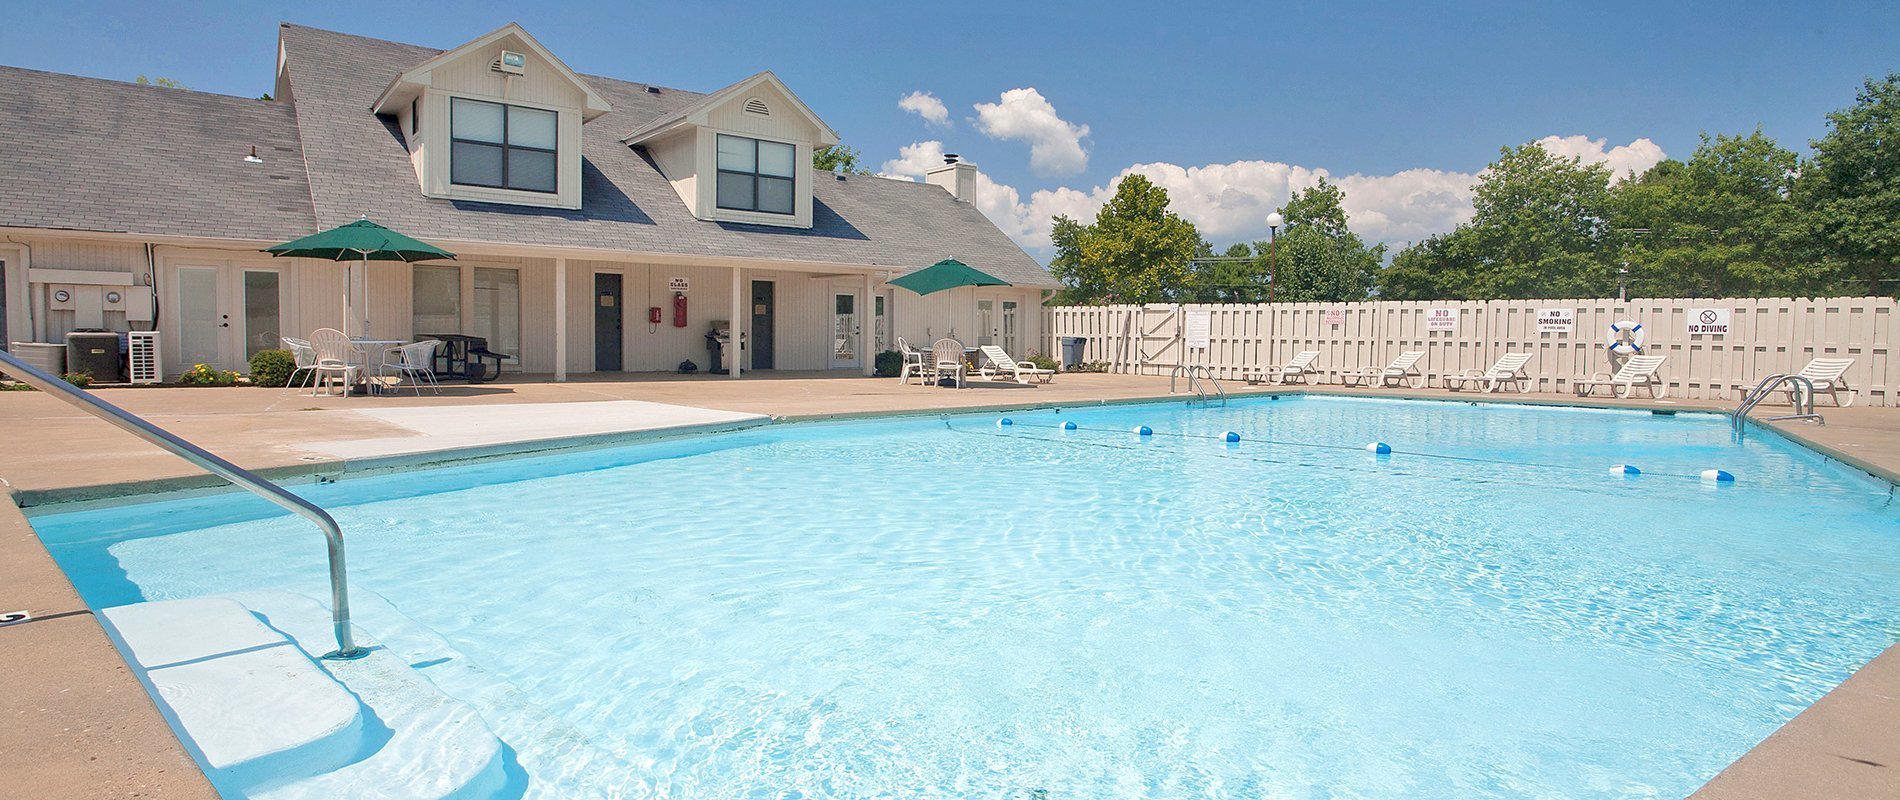 Best Shadow Lake Apartments Apartments In Russellville Ar With Pictures